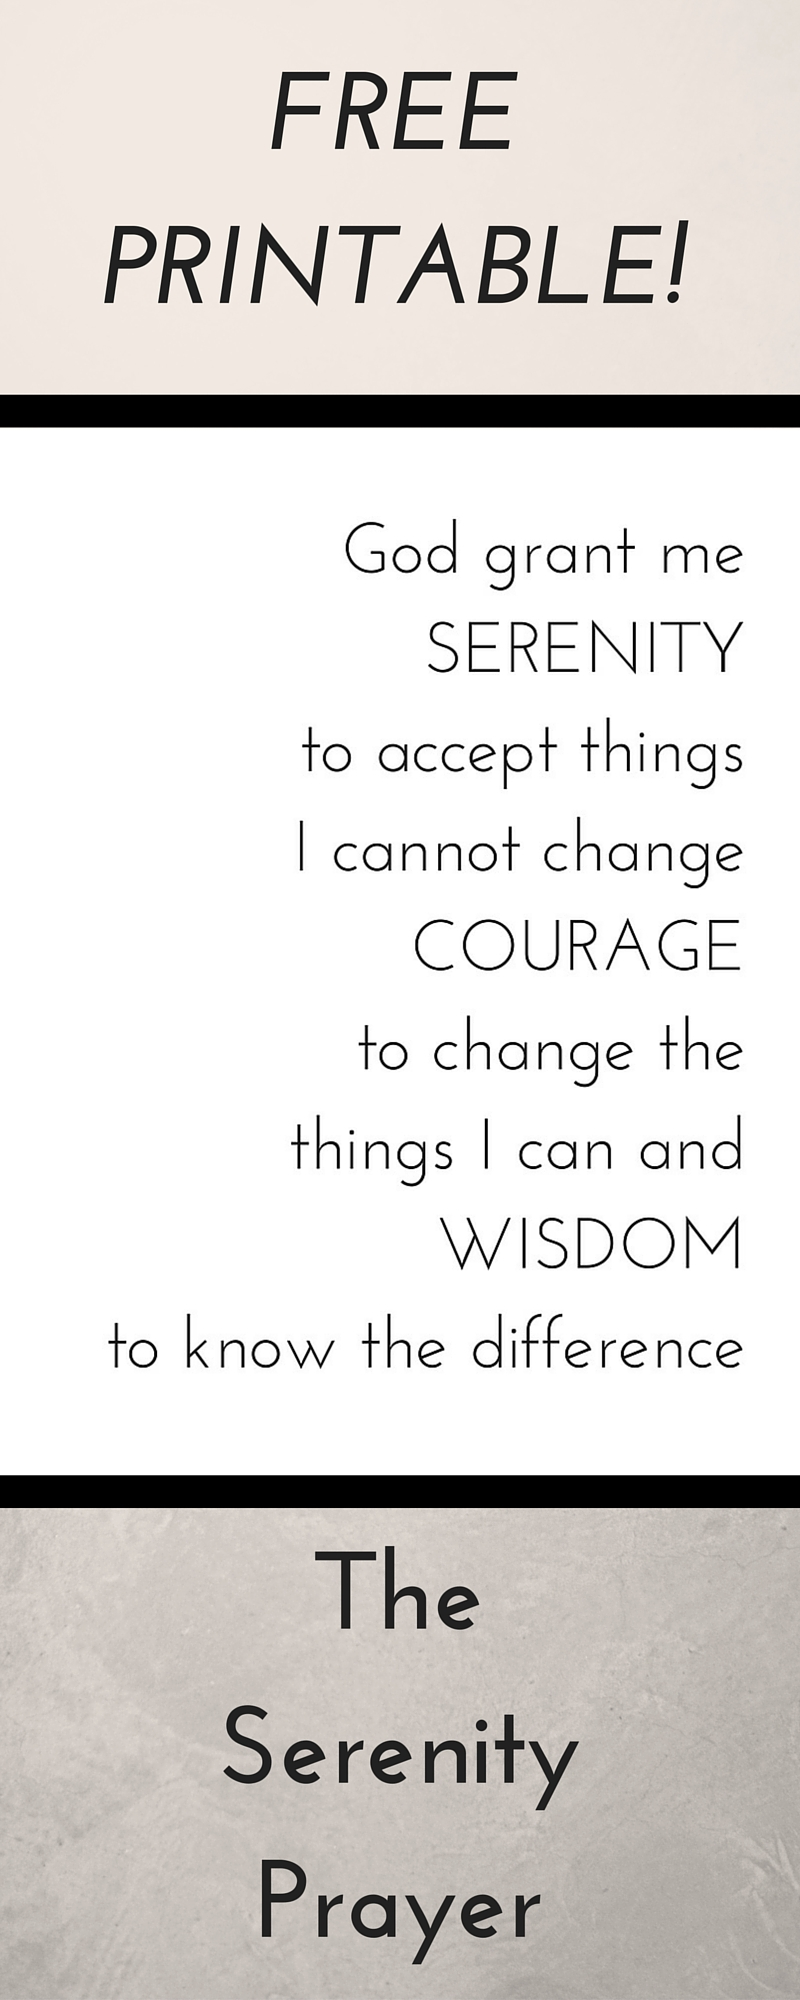 photograph regarding Prayer Printable called Serenity Prayer Printable - The Visitors Nest